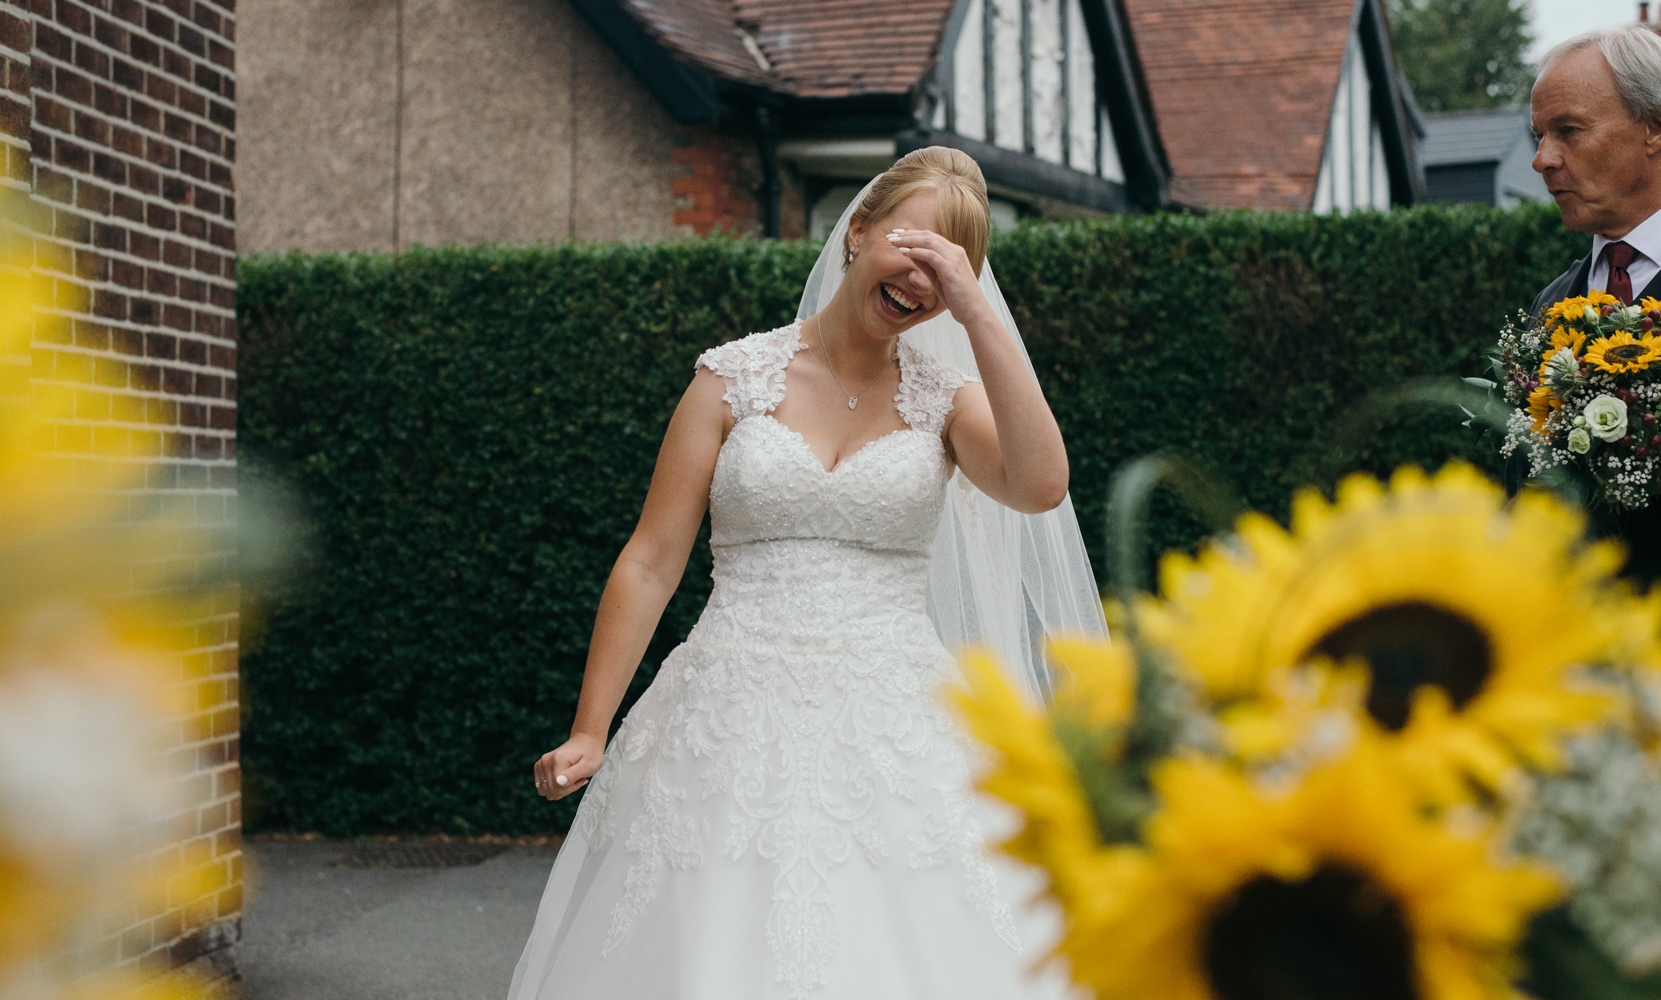 The bride waiting to go into the church having a laugh